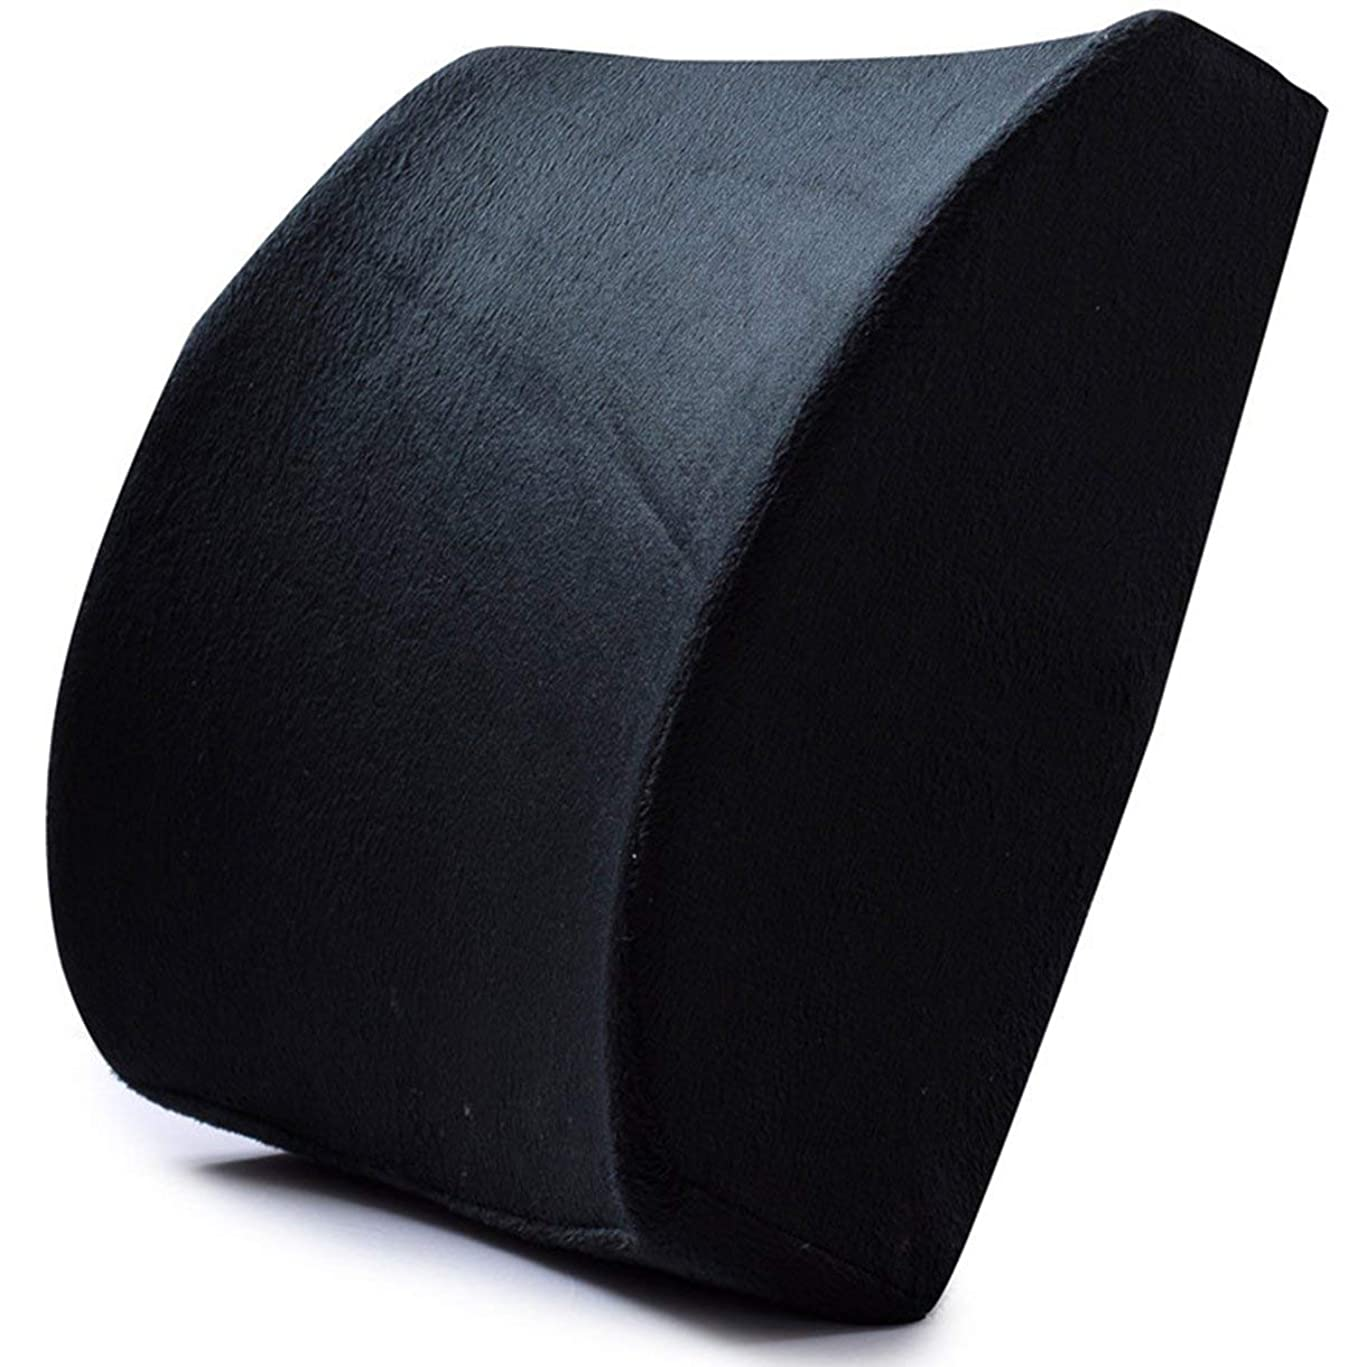 削る踊り子救急車Memory Foam Lumbar Support Waist Cushion Pillow For Chairs in the Car Seat Pillows Home Office Relieve Pain